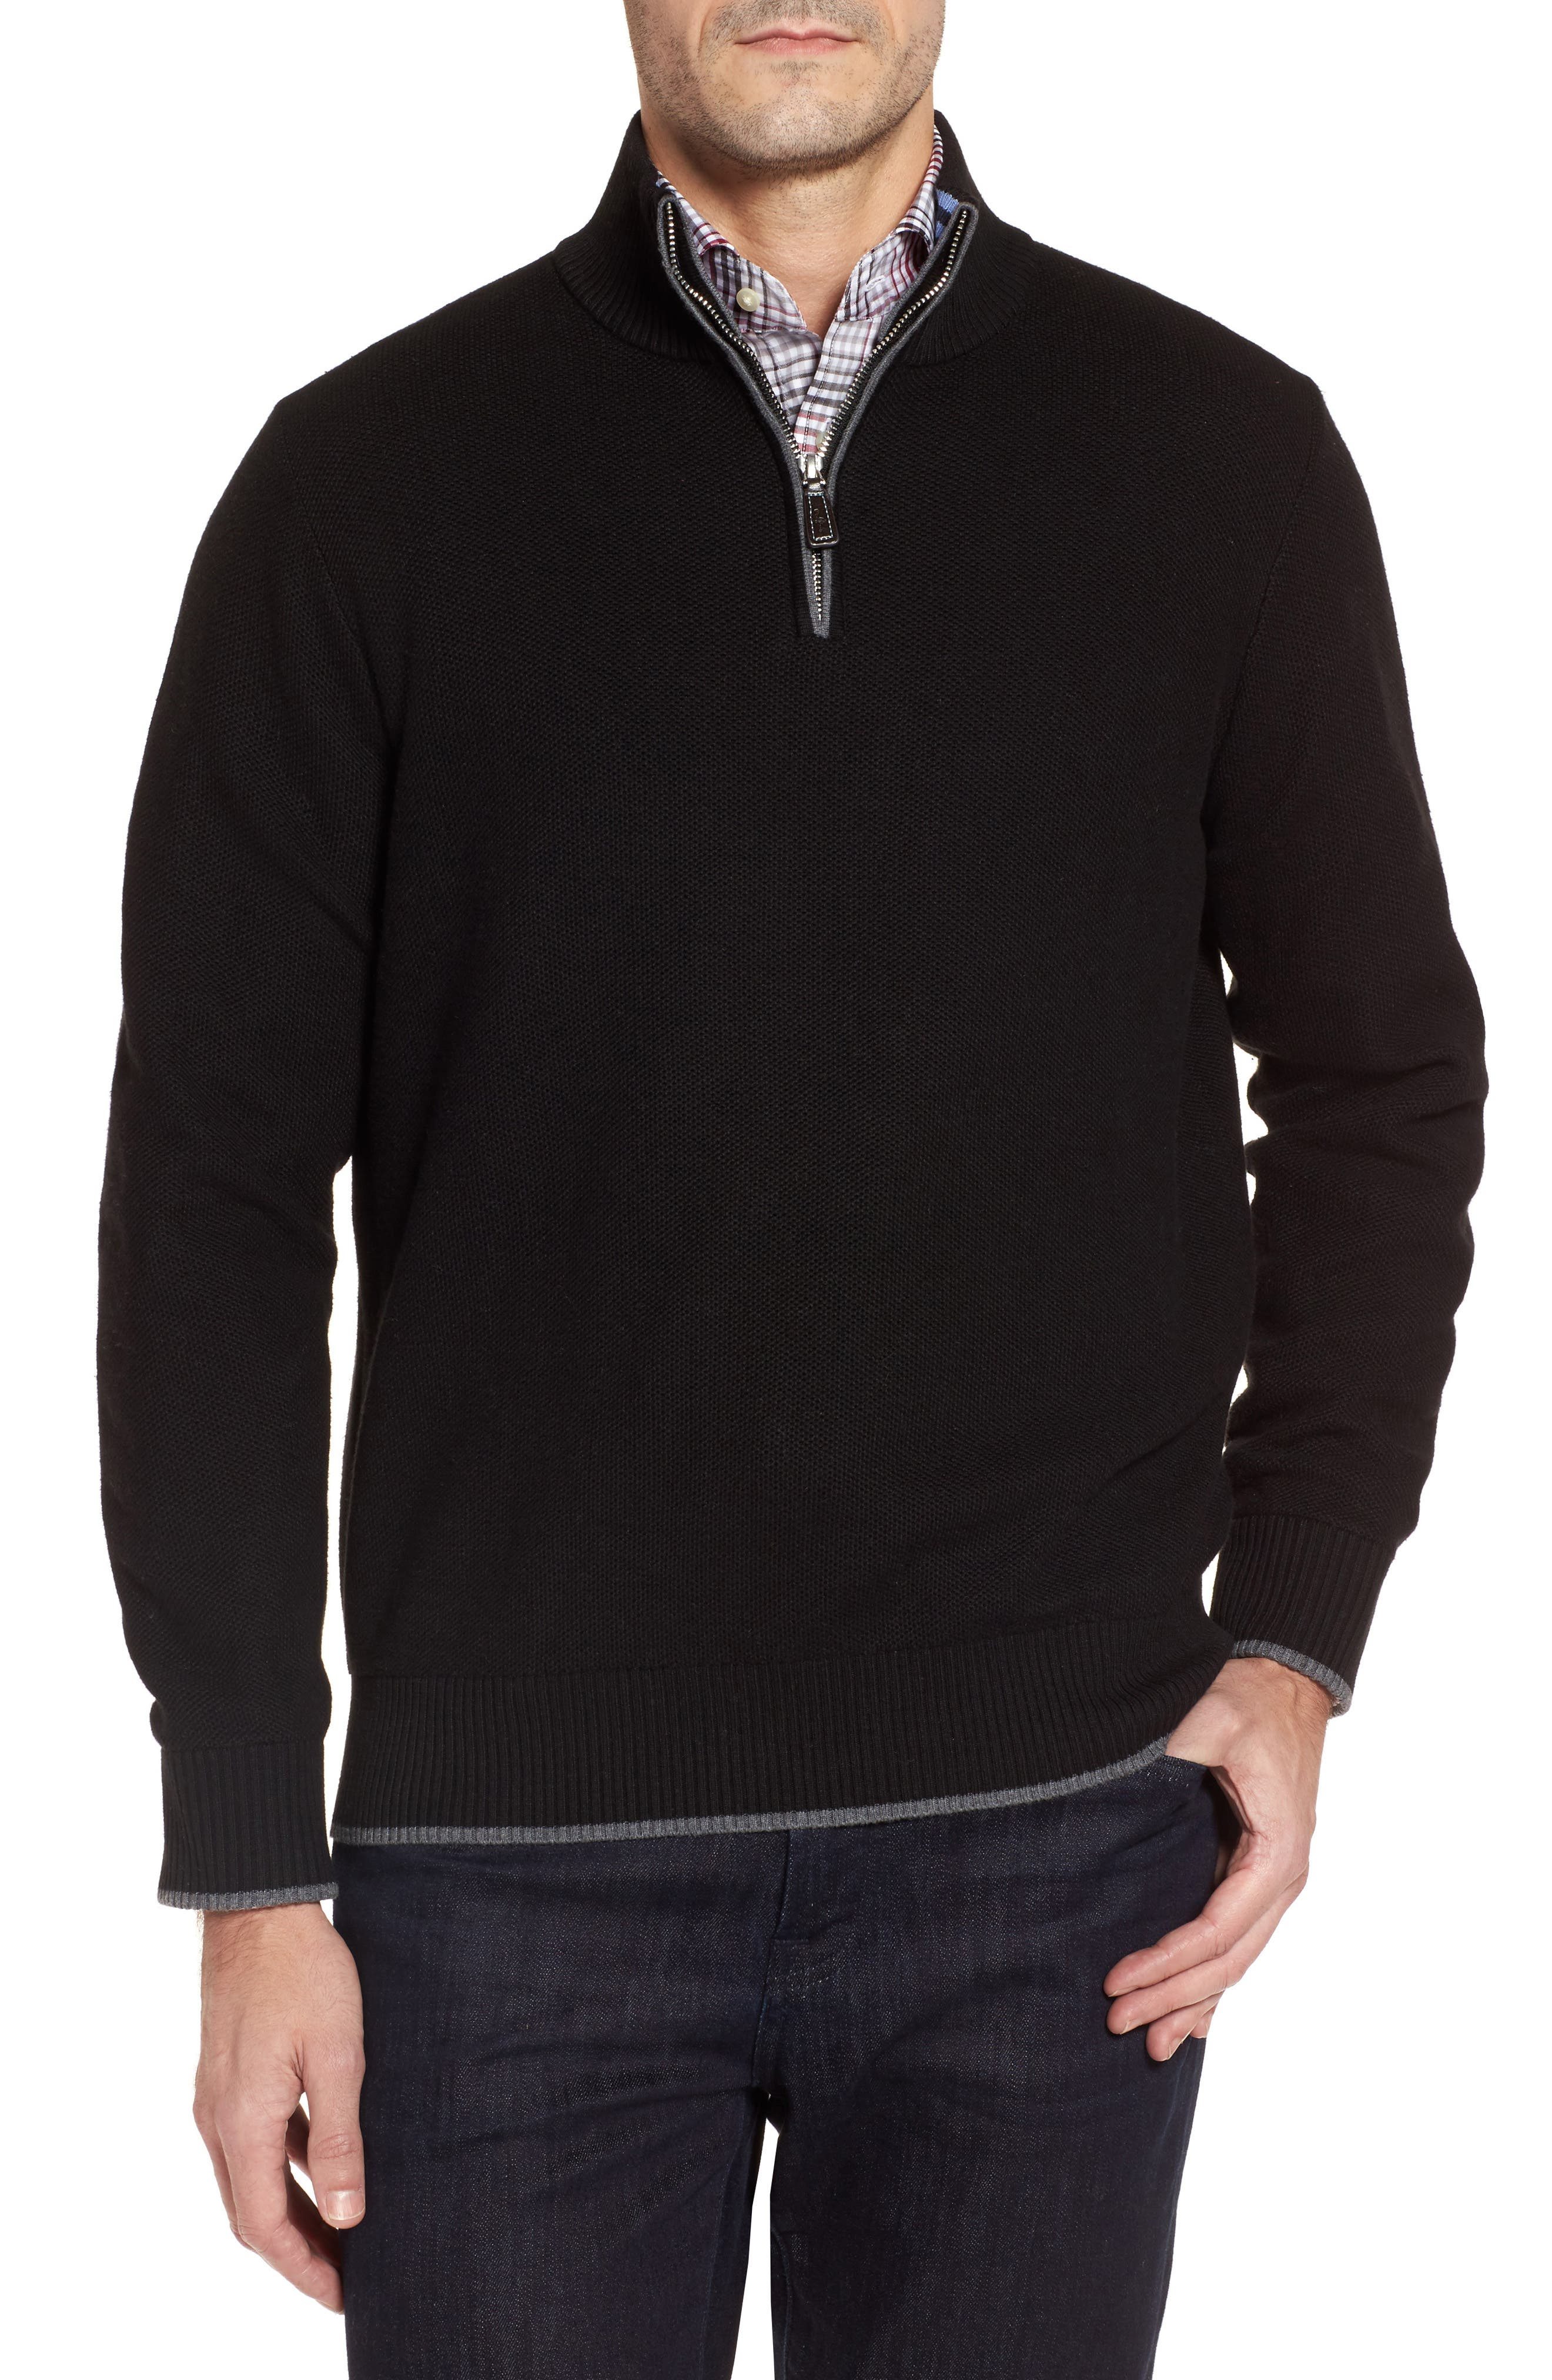 TailorByrd Lafitte Tipped Quarter Zip Sweater